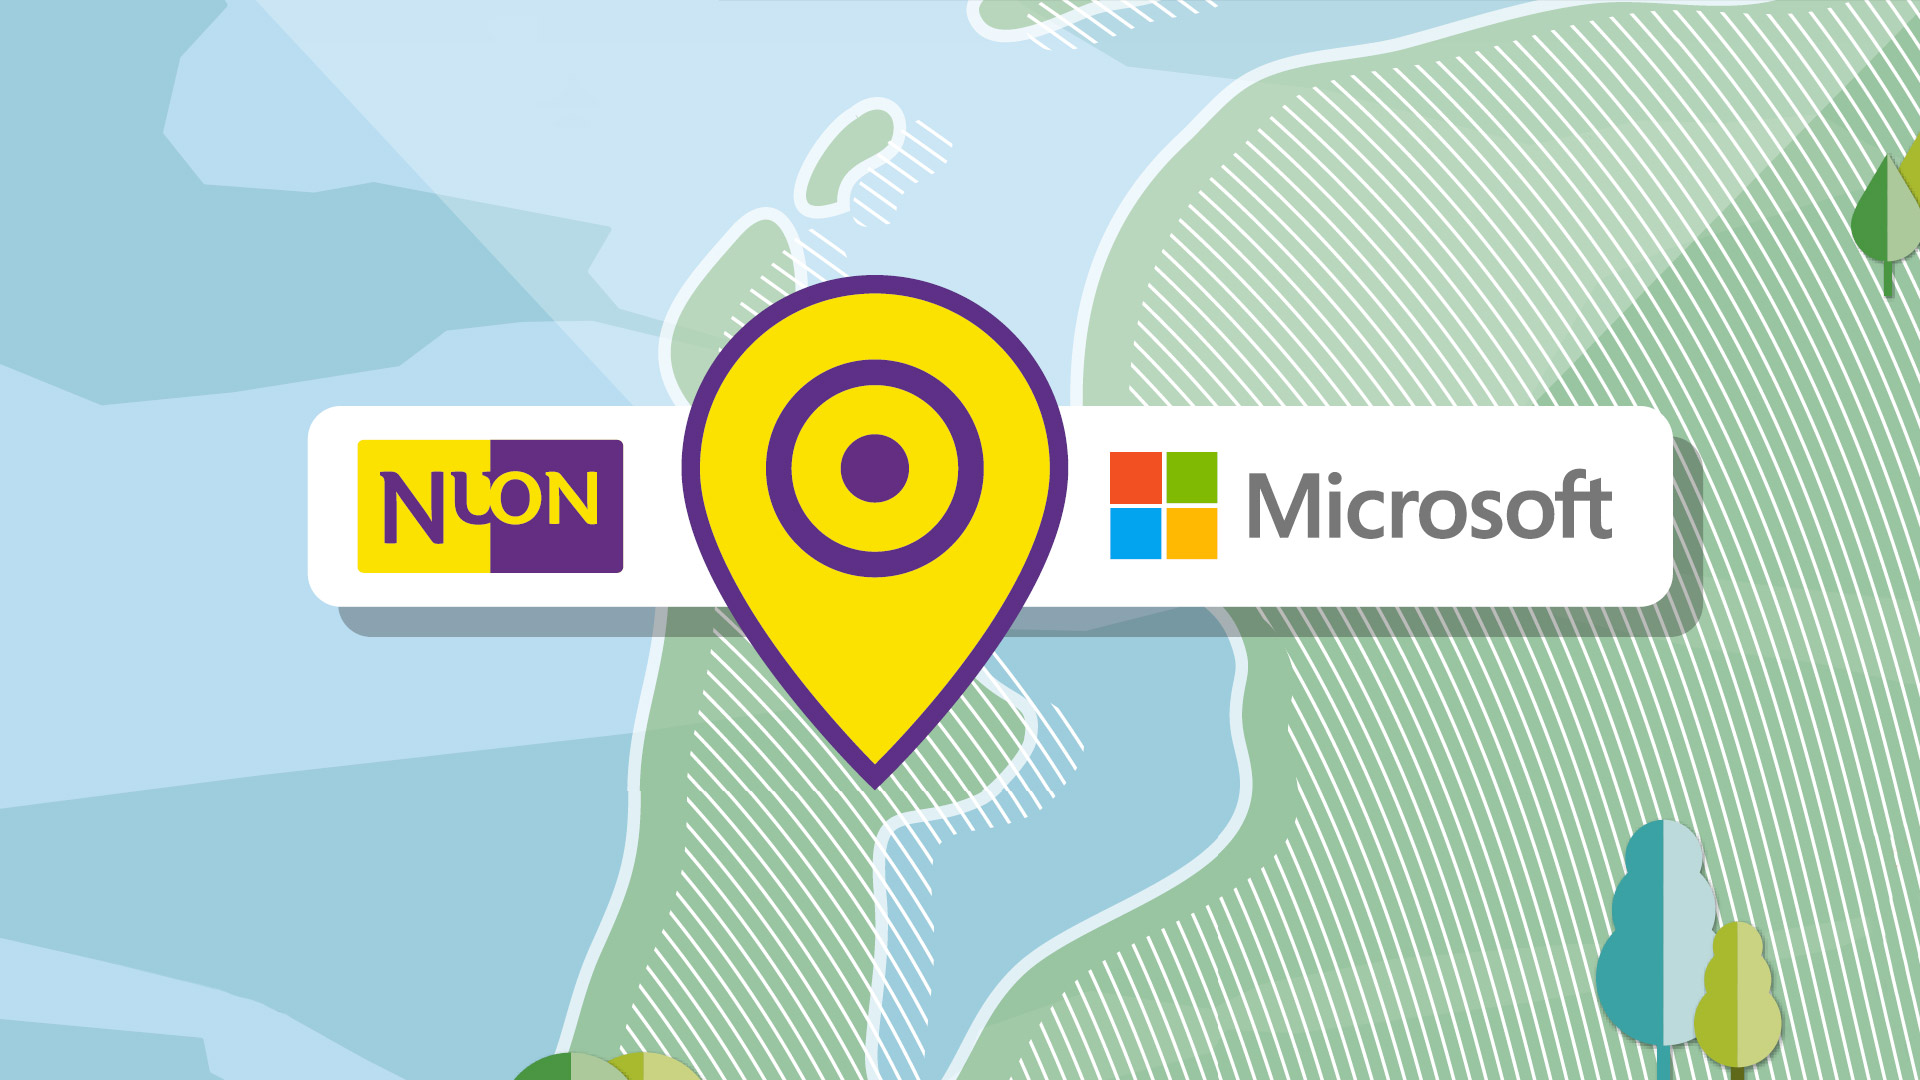 Illustration med Nuons og Microsofts logotyper